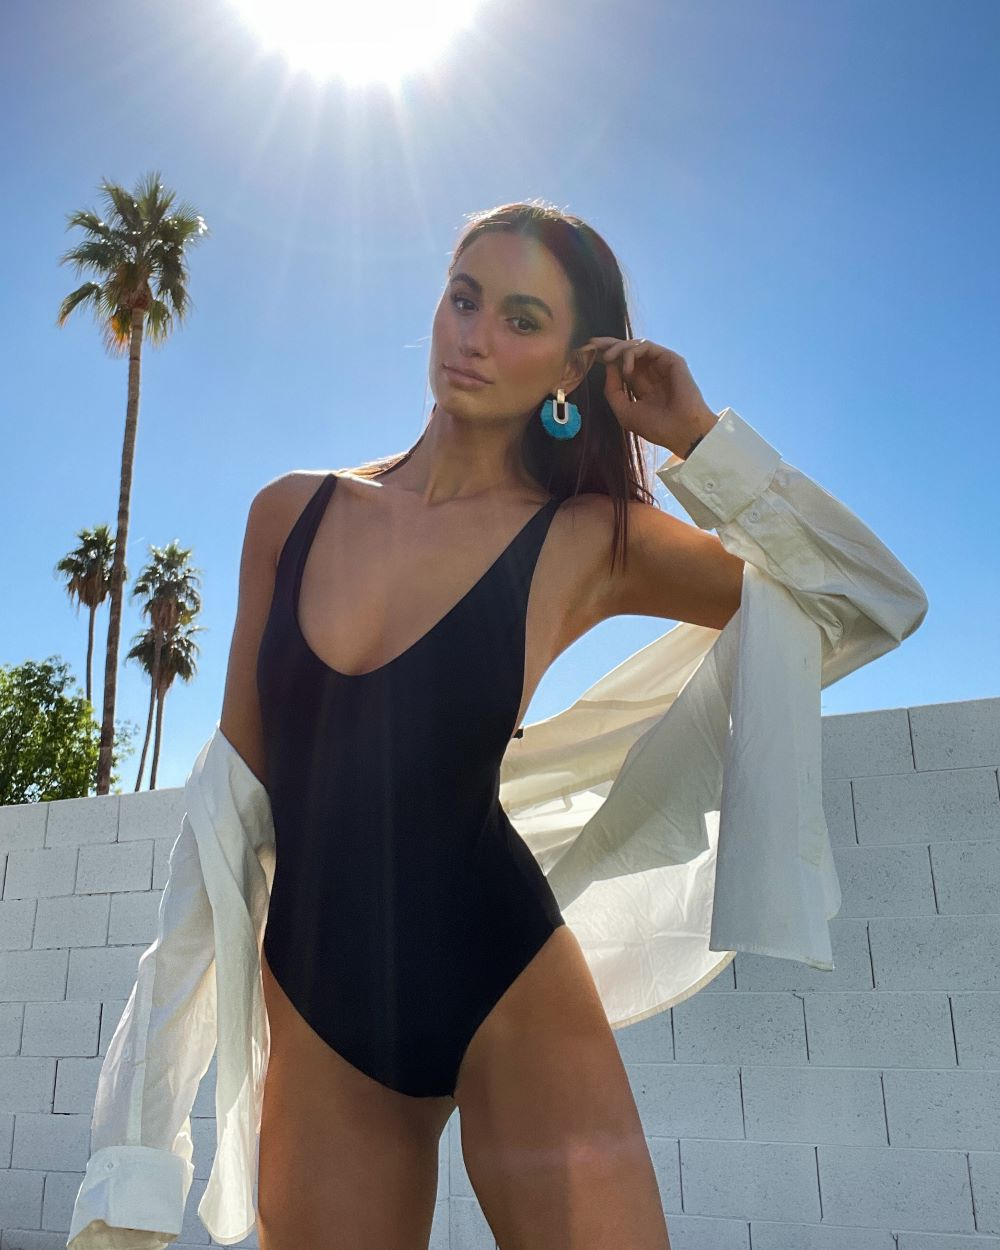 a woman wearing a black one piece swimsuit with a white button up shirt and turquoise fringe earrings with sun and palm trees in the background